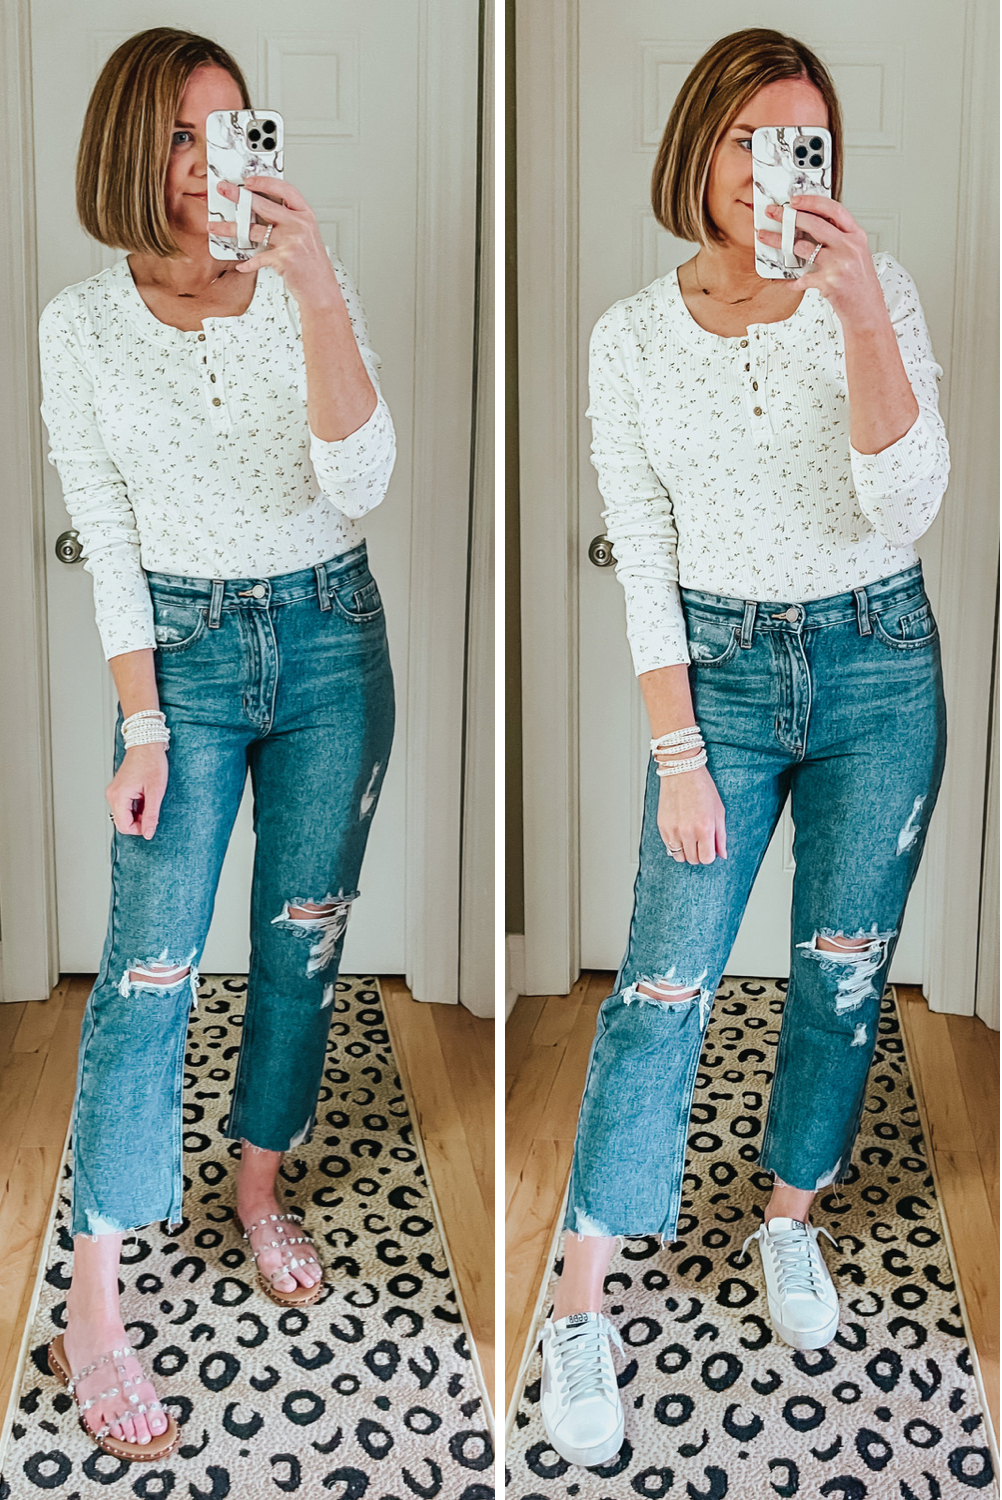 Six Red Dress Boutique Spring Favorites, ditsy floral full coverage bodysuit, mom jeans